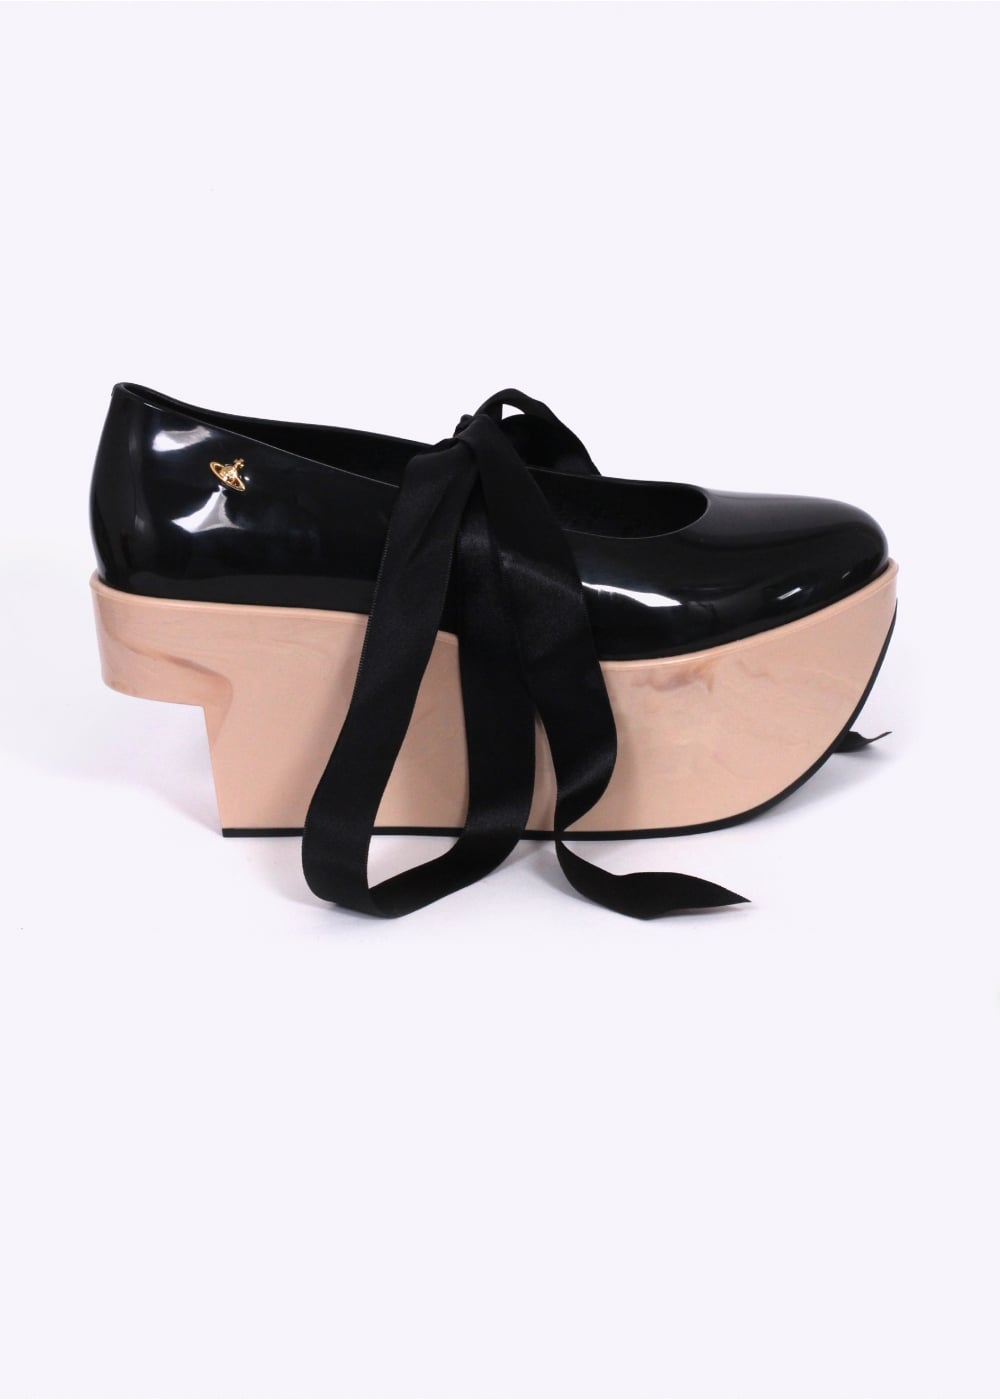 Vivienne Westwood Shoes Black And White